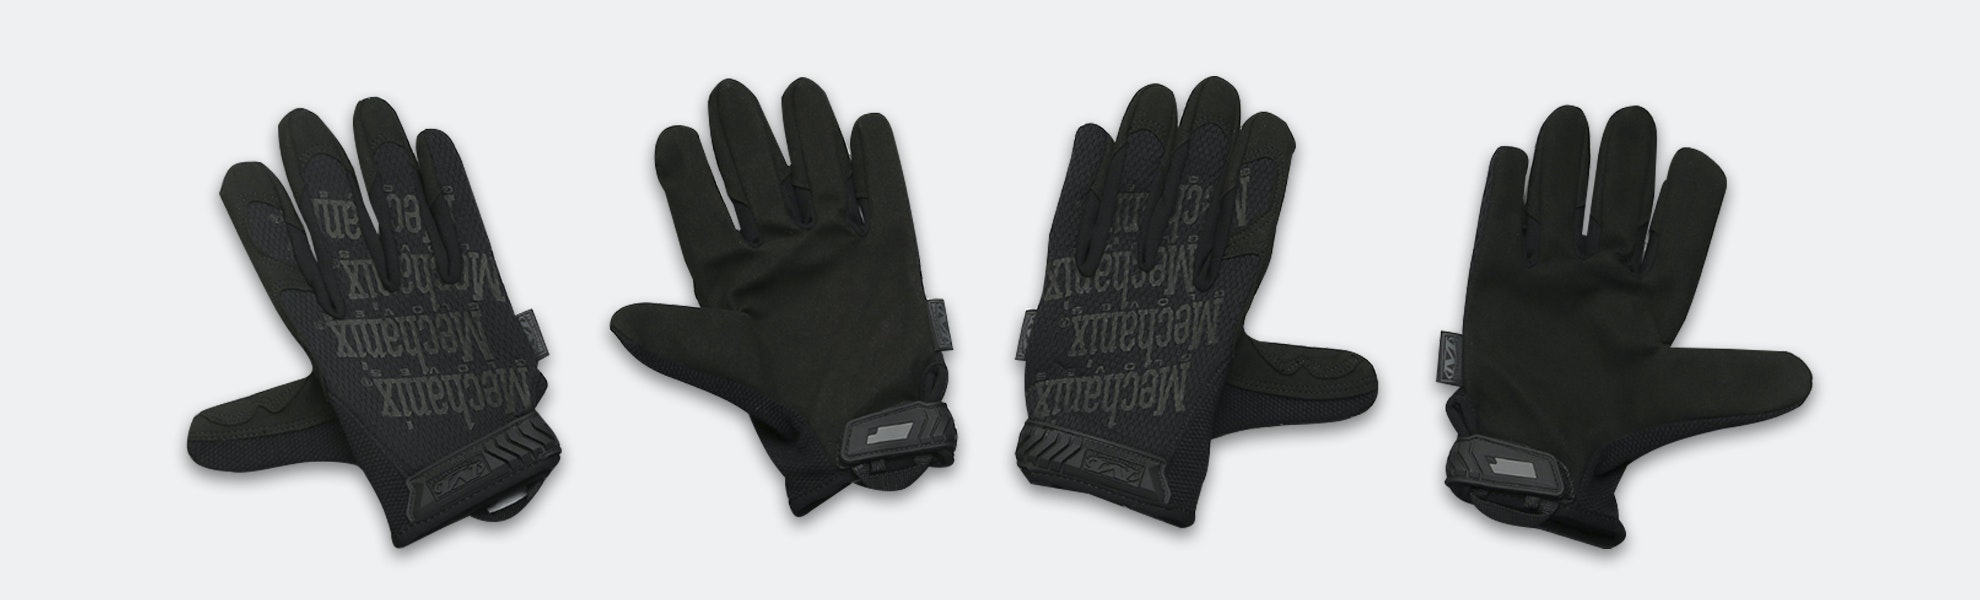 Mechanix Wear Original Gloves (2-Pack)